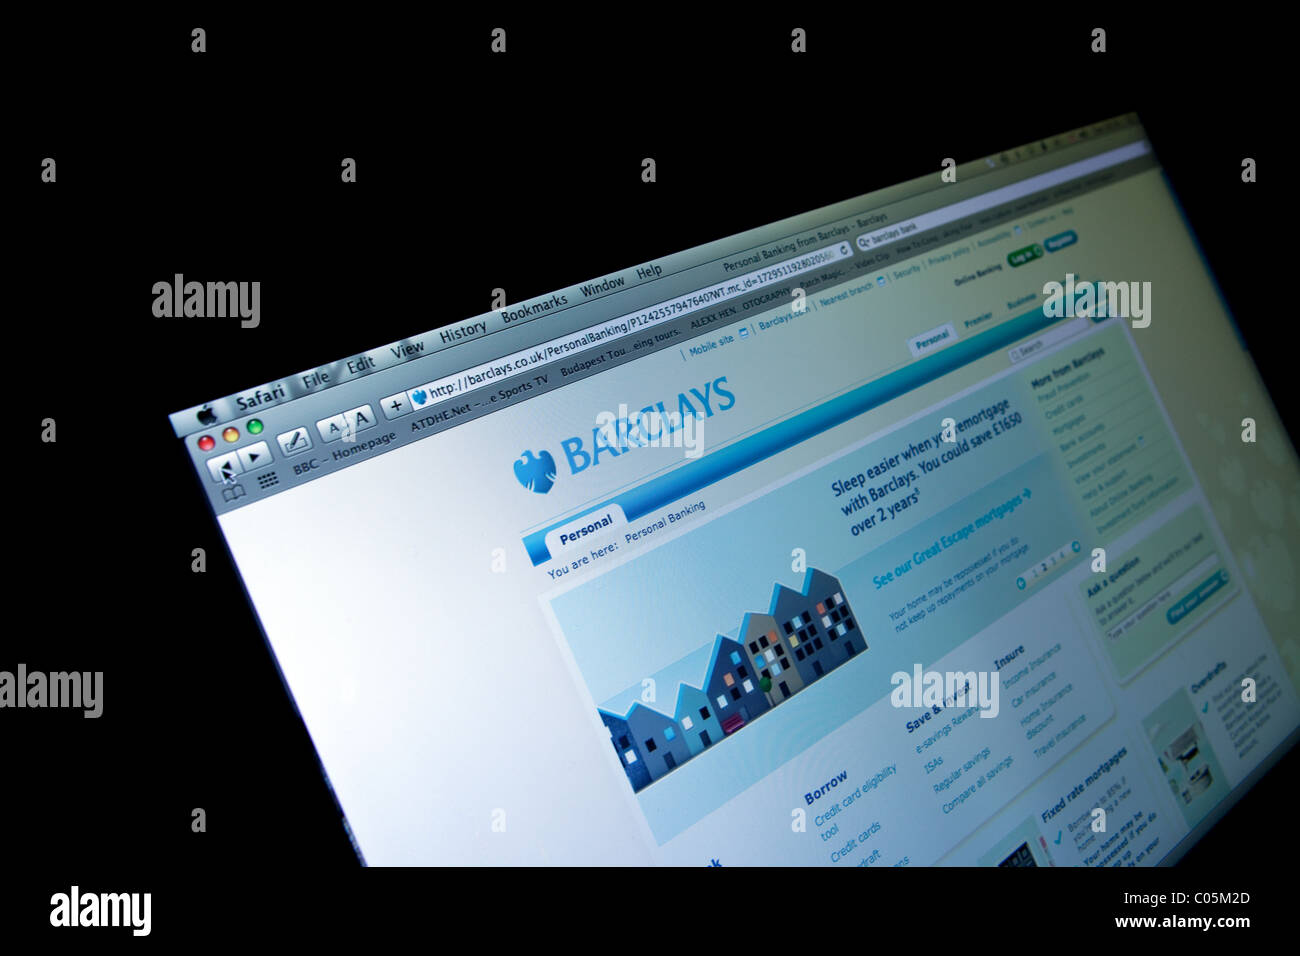 Barclays Bank on-line banking home page - Stock Image